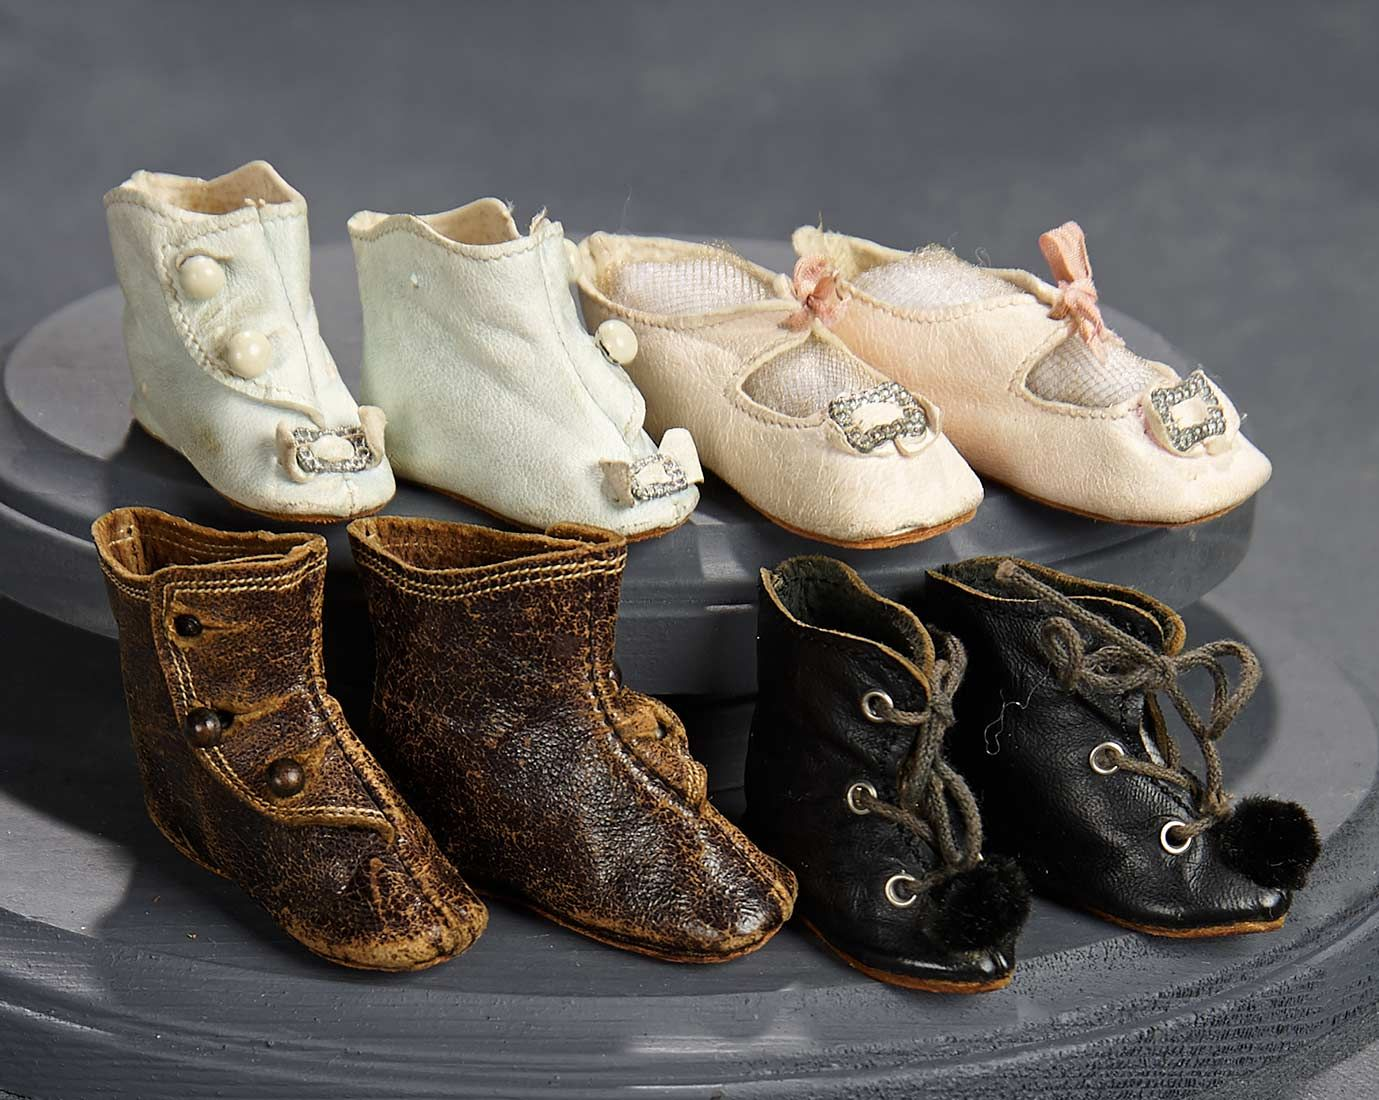 """What Finespun Threads"" - Antique Doll Costumes, 1840-1925 - March 12, 2017: 329 Four Pairs of Kid Shoes"